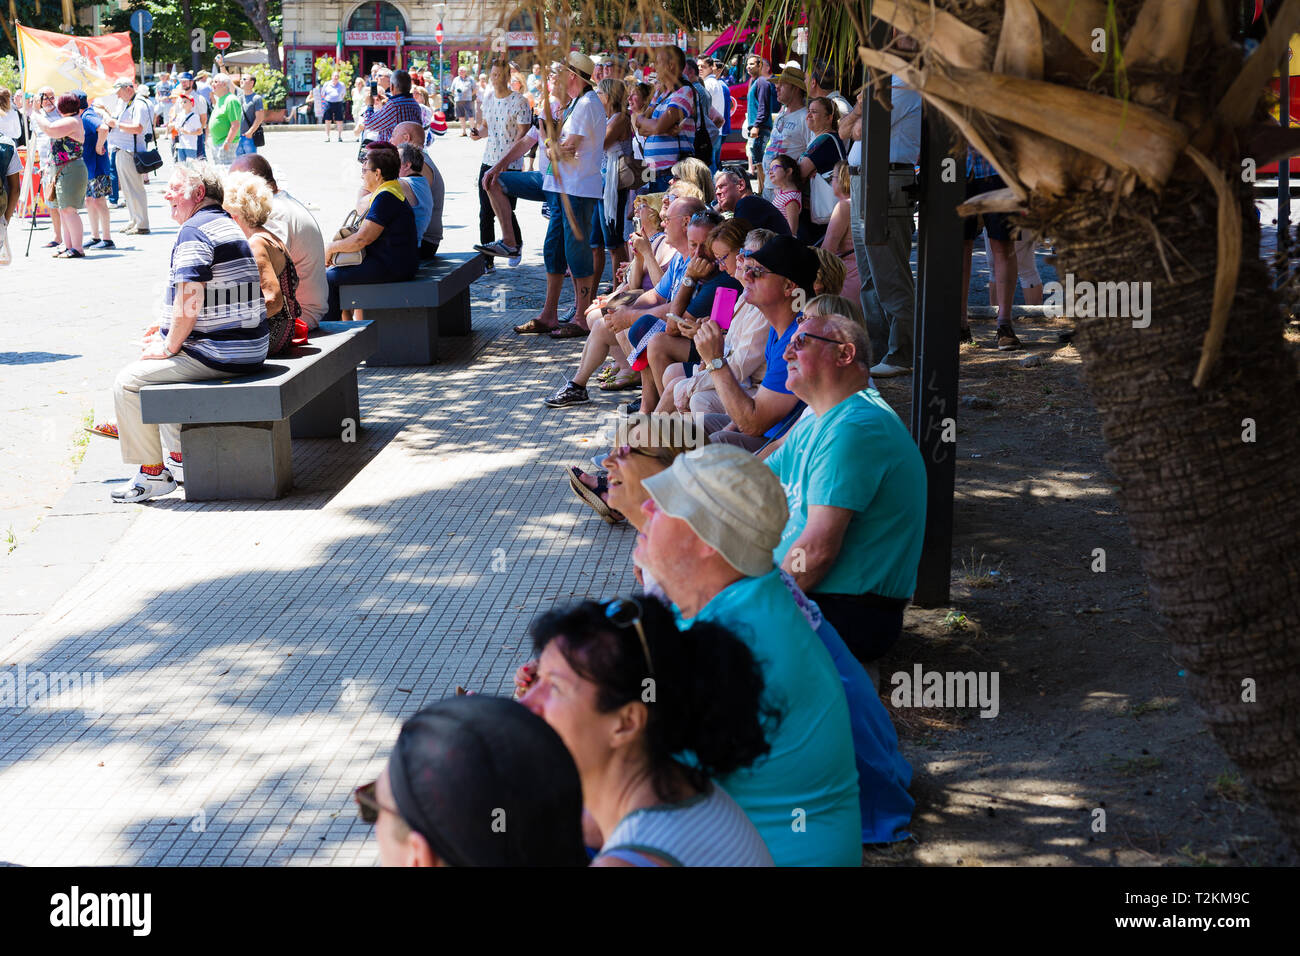 Messina, Sicily, Italy. People gather in the square waiting for the astronomical clock tower to chime. - Stock Image